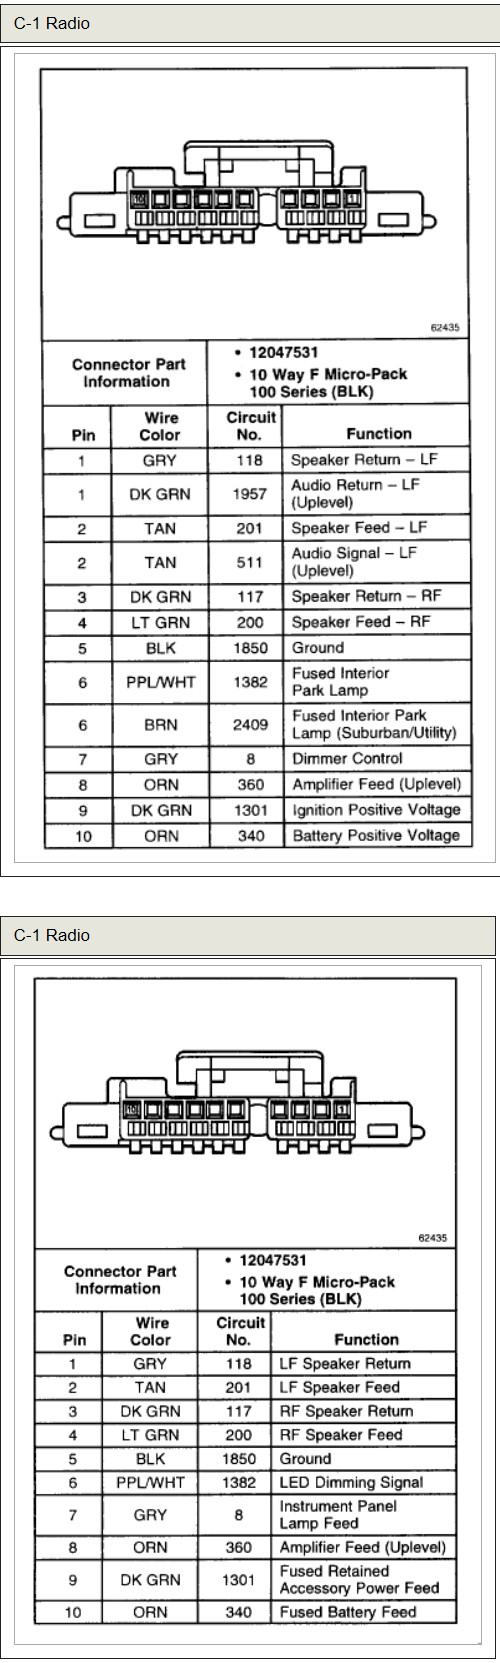 1997 Chevy Cavalier Radio Wiring Diagram - Wiring Diagram Text touch-suite  - touch-suite.albergoristorantecanzo.it | 1998 Chevy Cavalier Radio Wiring Diagram |  | touch-suite.albergoristorantecanzo.it